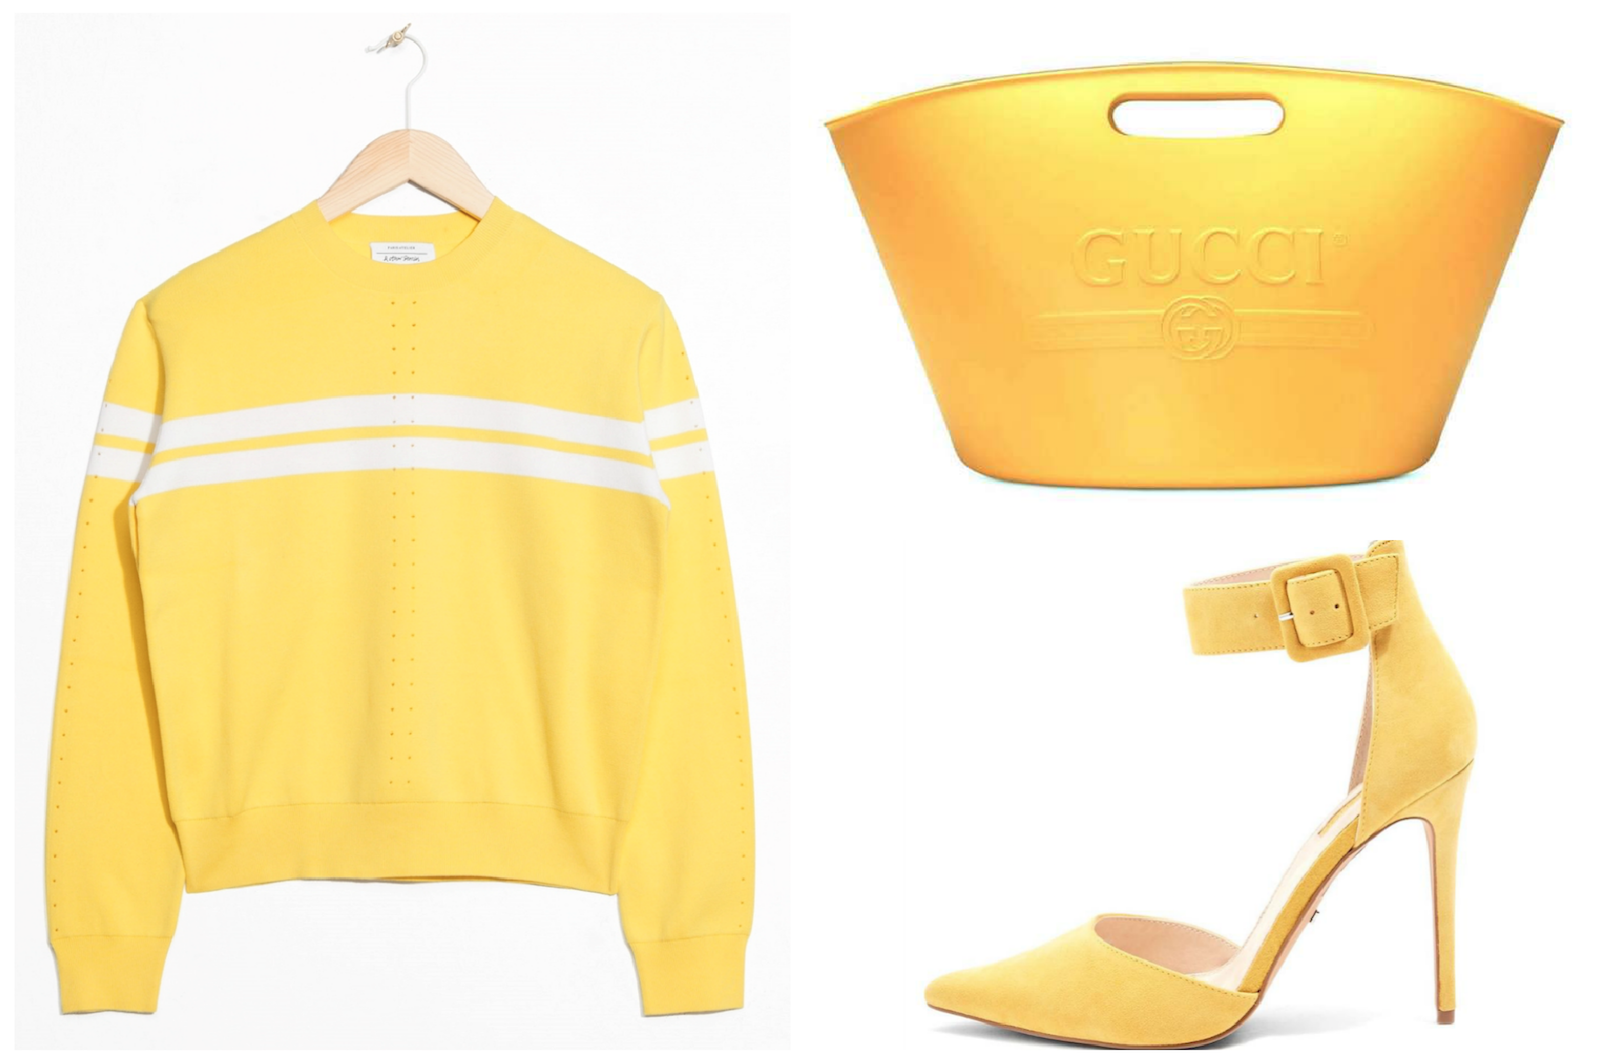 yellow bags and clothing